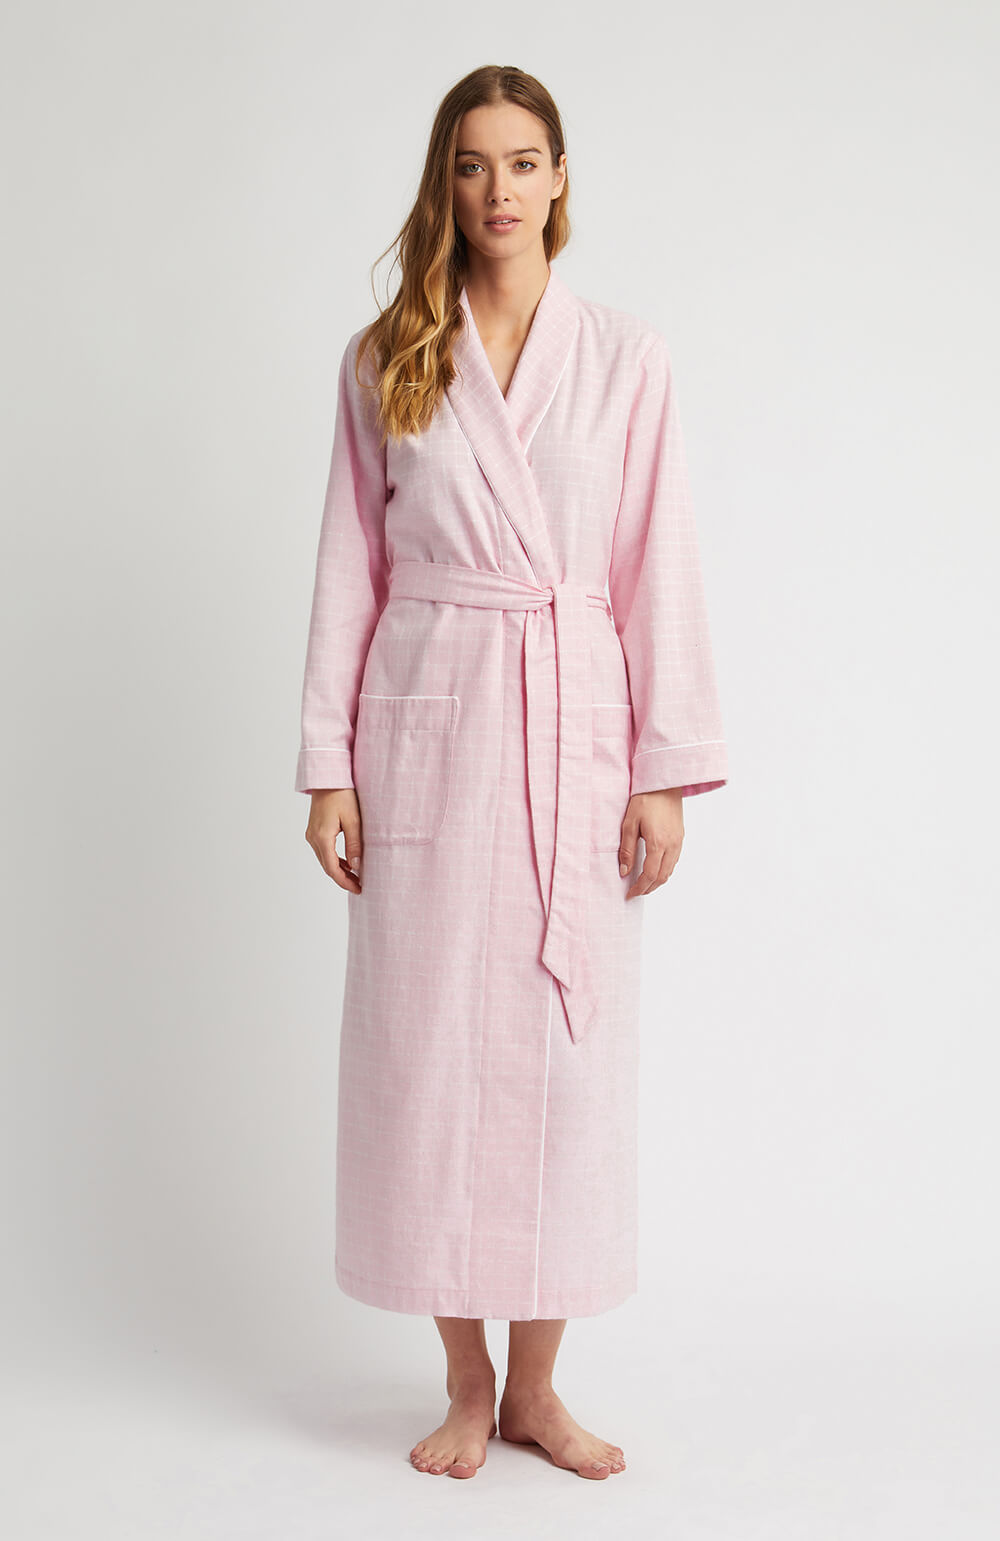 Brushed Pastel Gown (bldg) - Pink Check | Bonsoir of London